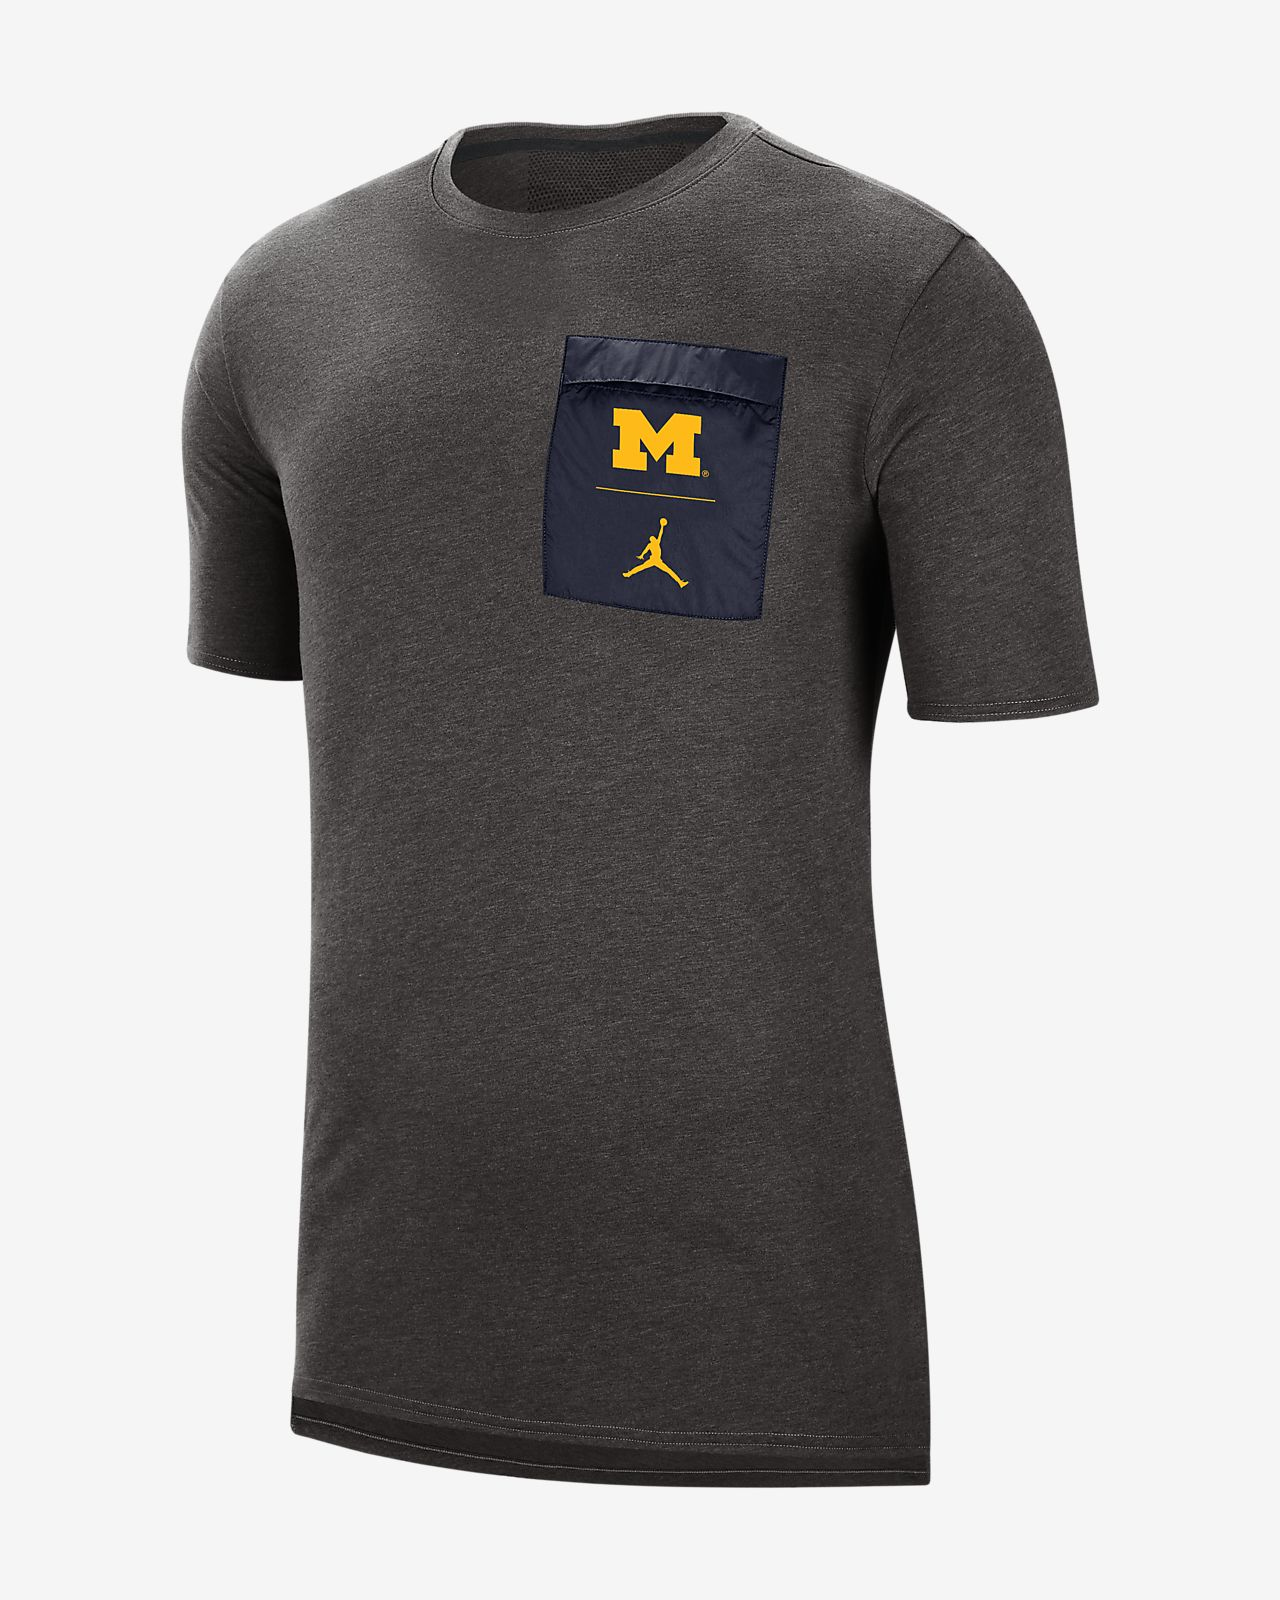 Jordan 23 Tech Cool (Michigan) Men's Training Top